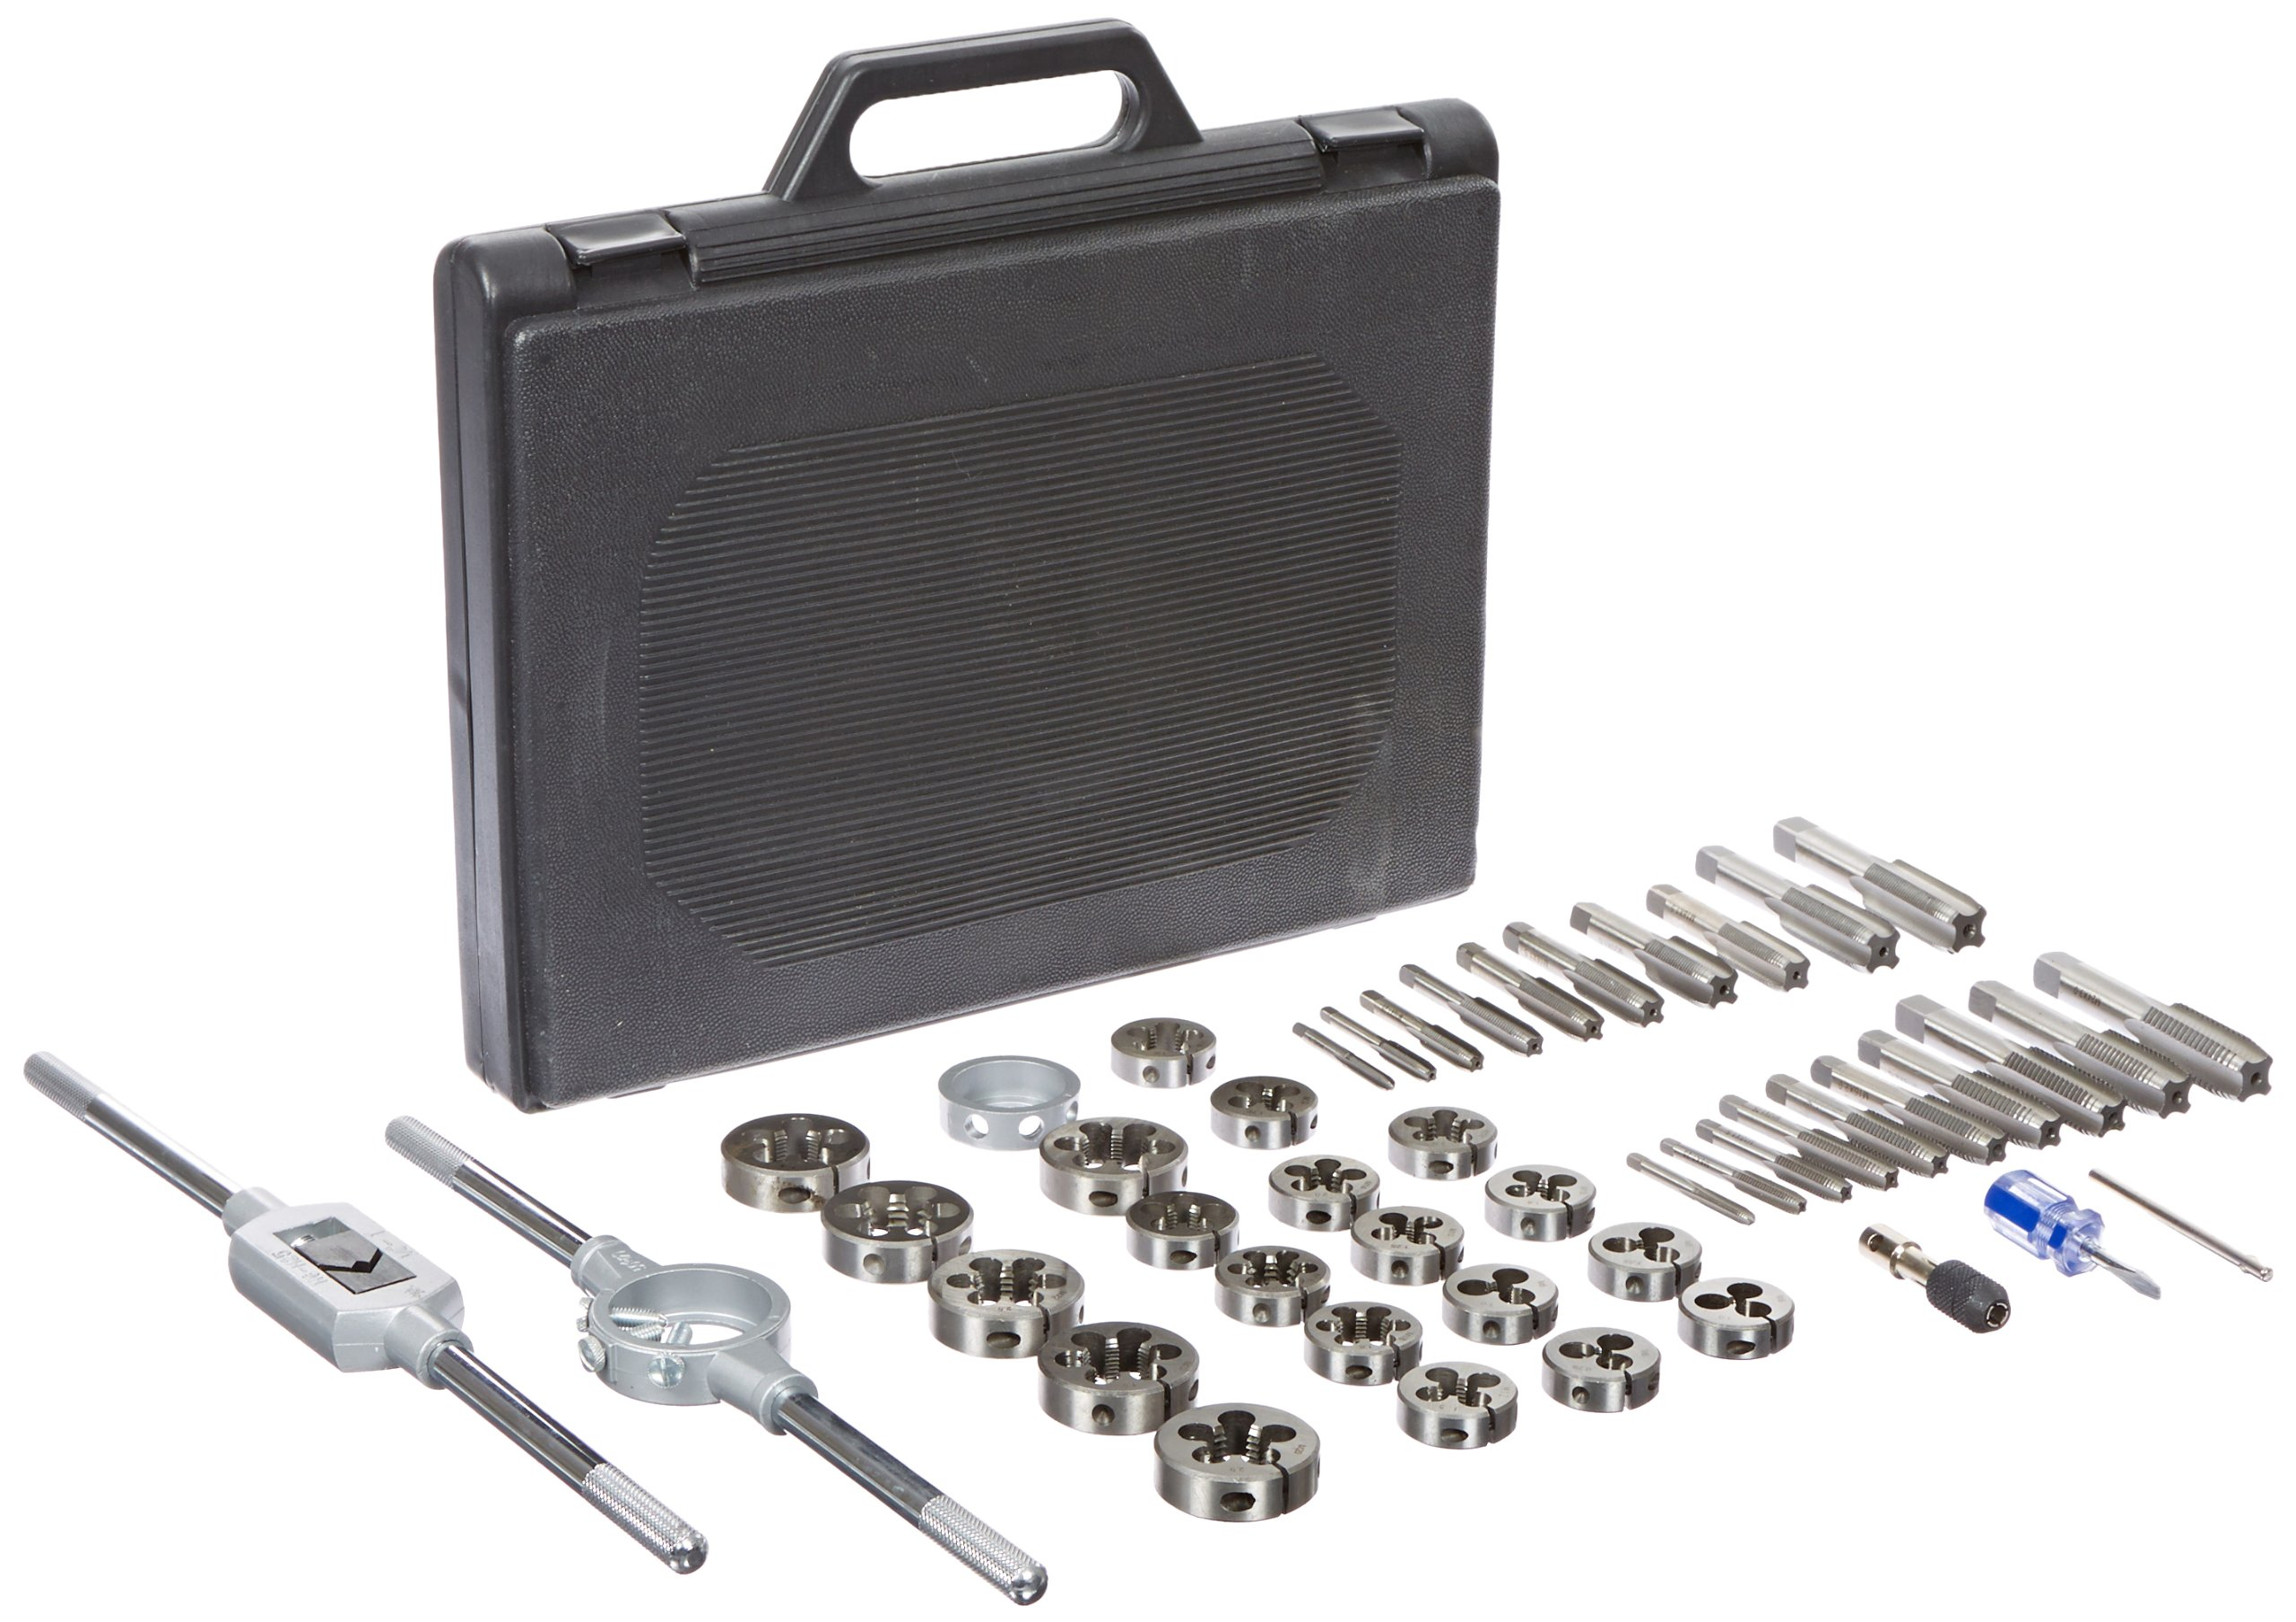 Drill America 45 Piece Carbon Steel Tap and Die Set (6 mm - 24 mm, NC and NF), DWT Series by Drill America